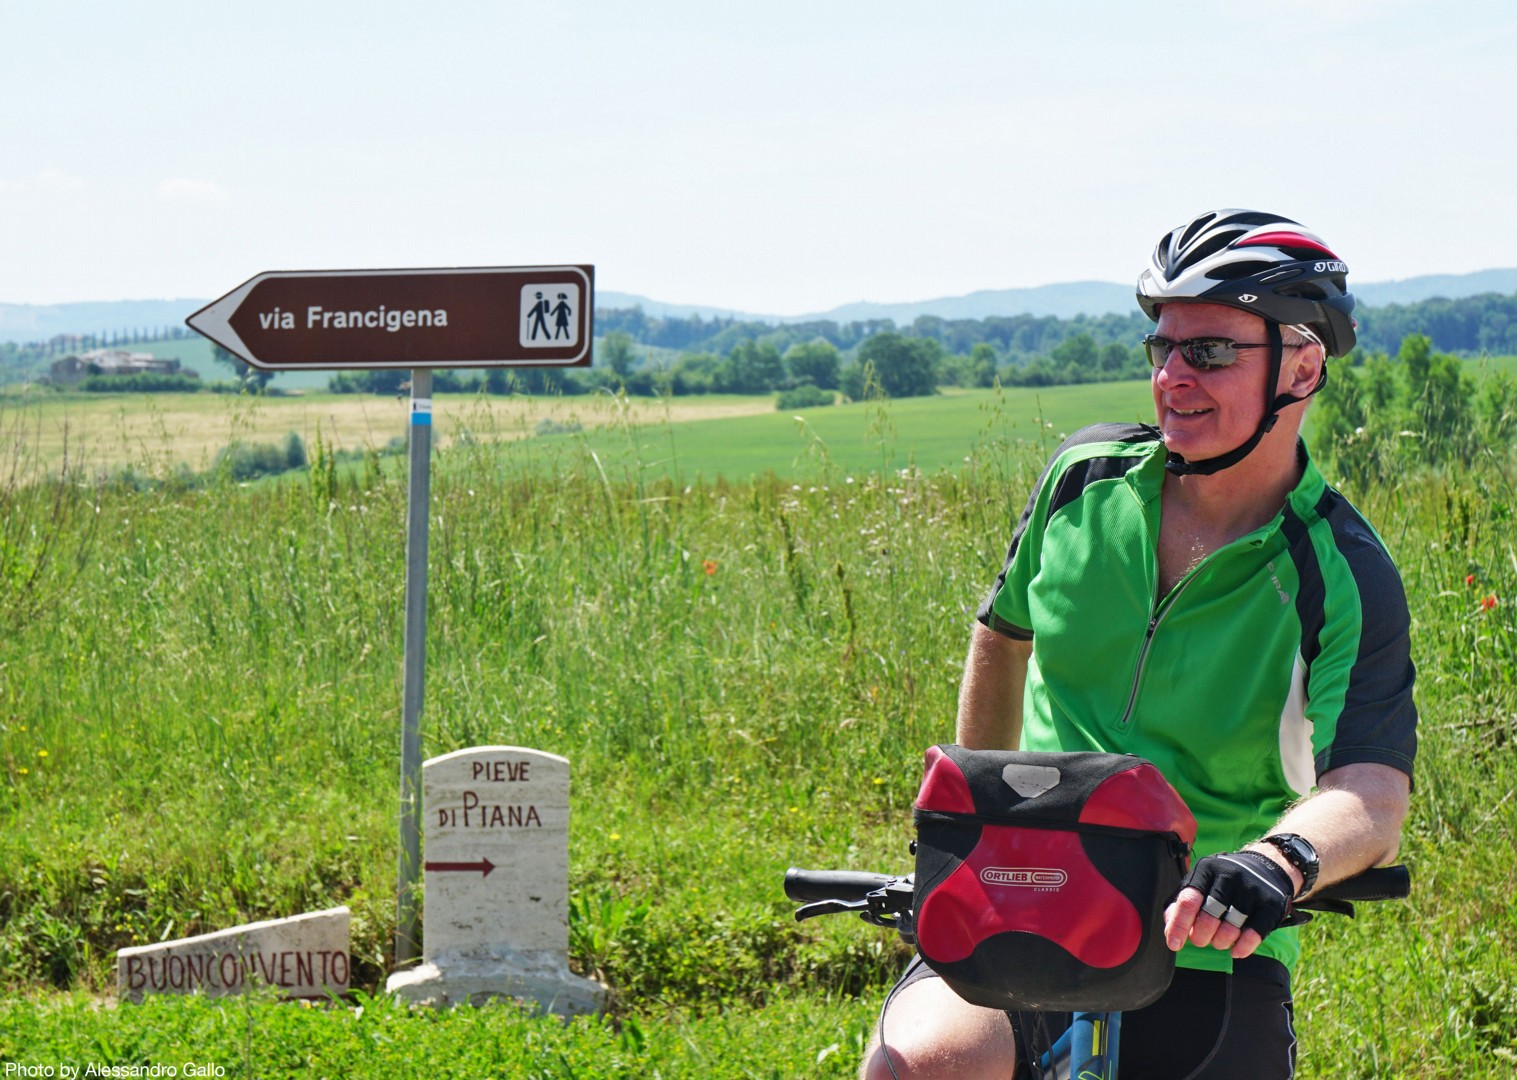 Italy-Via-Francigena-Tuscany-to-Rome-Guided-Leisure-Cycling-Holiday-stop-to-appreciate-the-view - Italy - Via Francigena (Tuscany to Rome) - Guided Leisure Cycling Holiday - Italia Leisure and Family Cycling